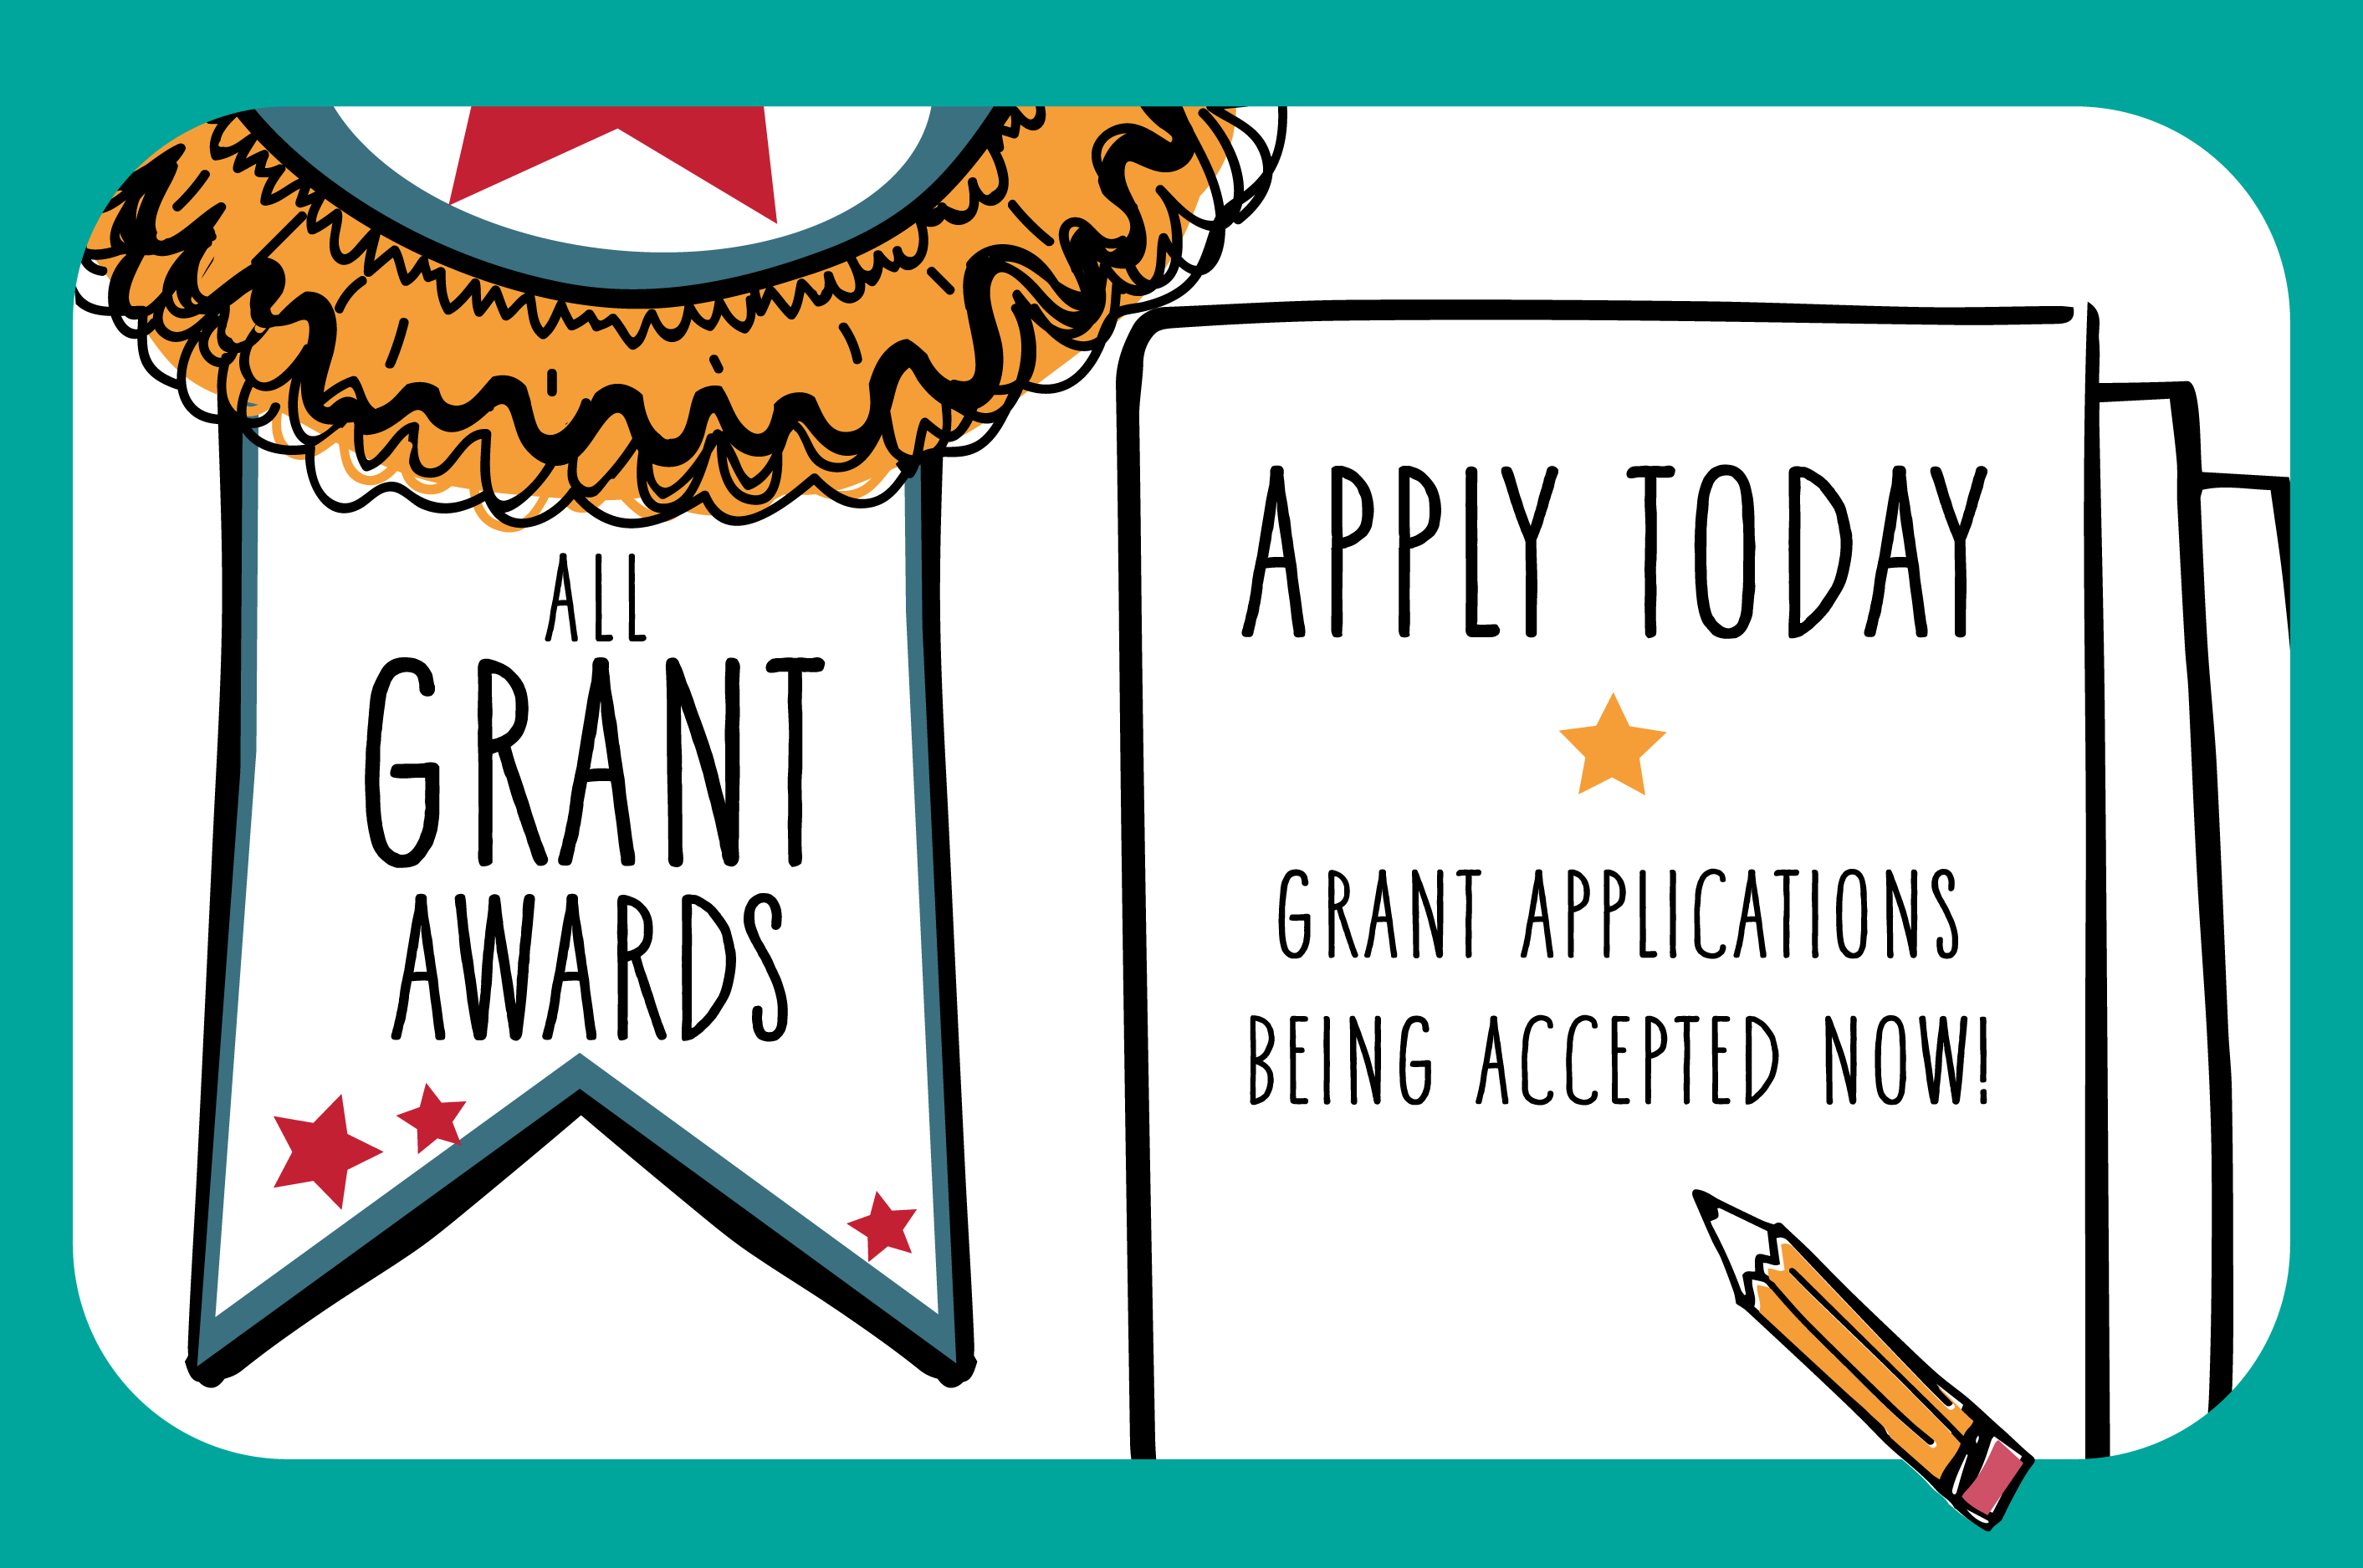 General Grant Apply Now Carousel